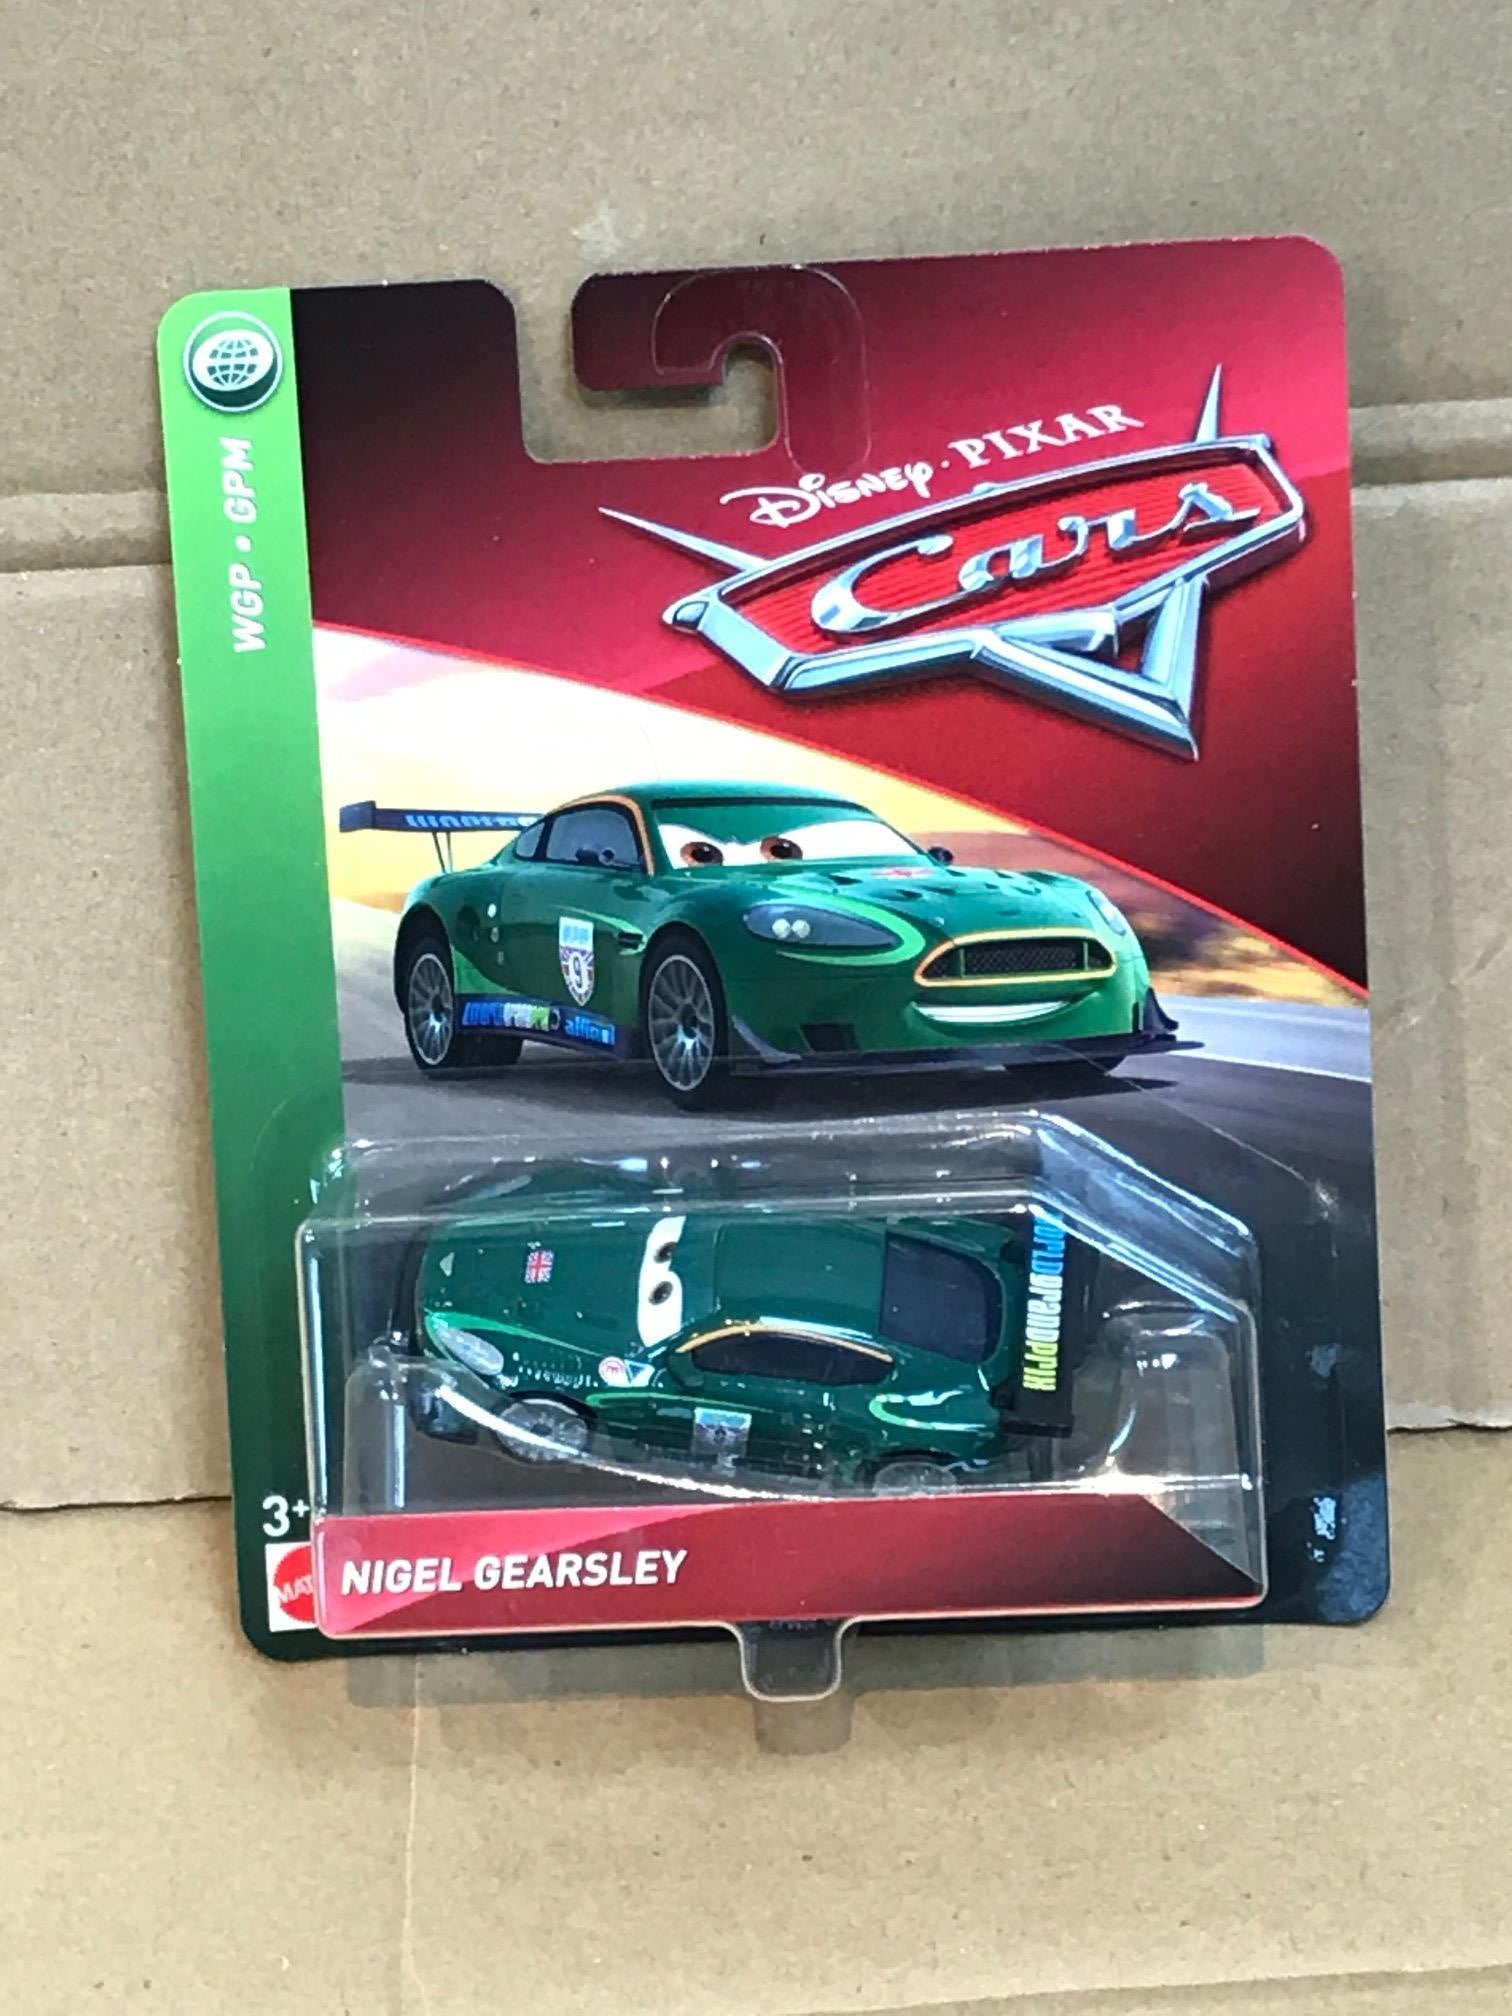 Disney Cars Diecast Nigel Gearsley Gemdans